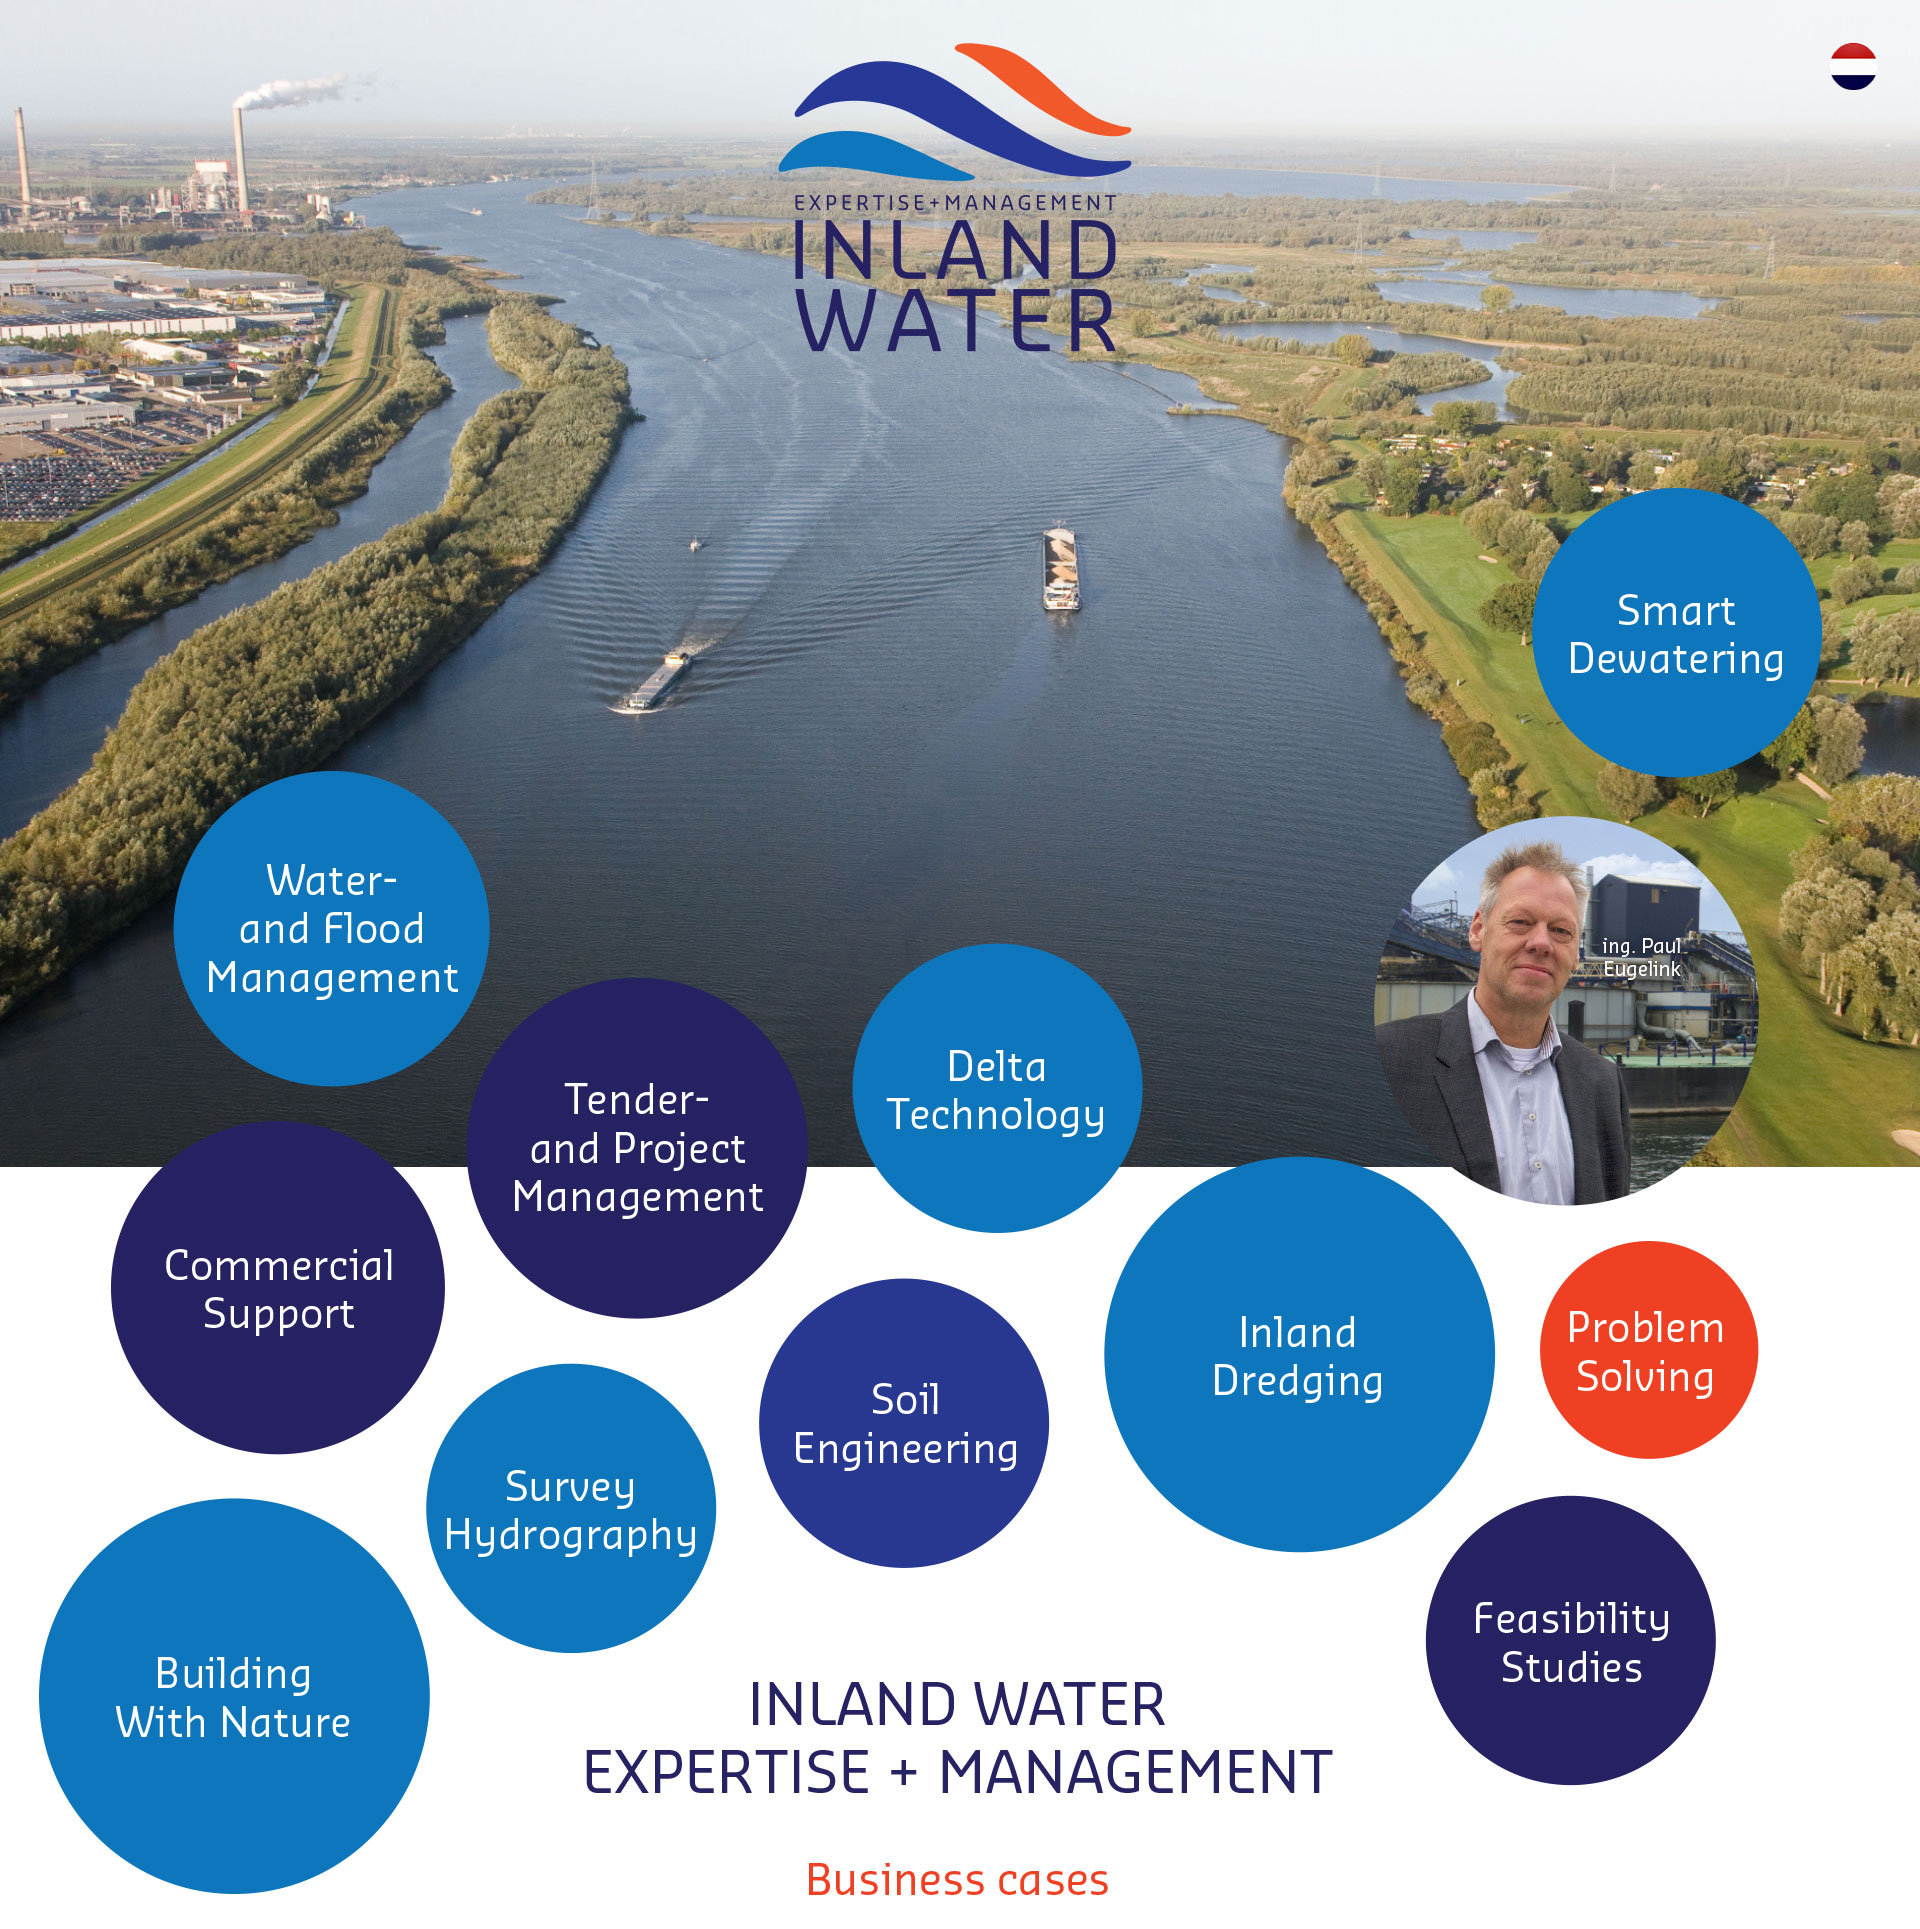 INLAND WATER Expertise + Management. project management , tender management, inland dredging, commercial support, waterboards, river systems, delta technology, feasibility studies ,survey / hydrography, smart dewatering, building with nature